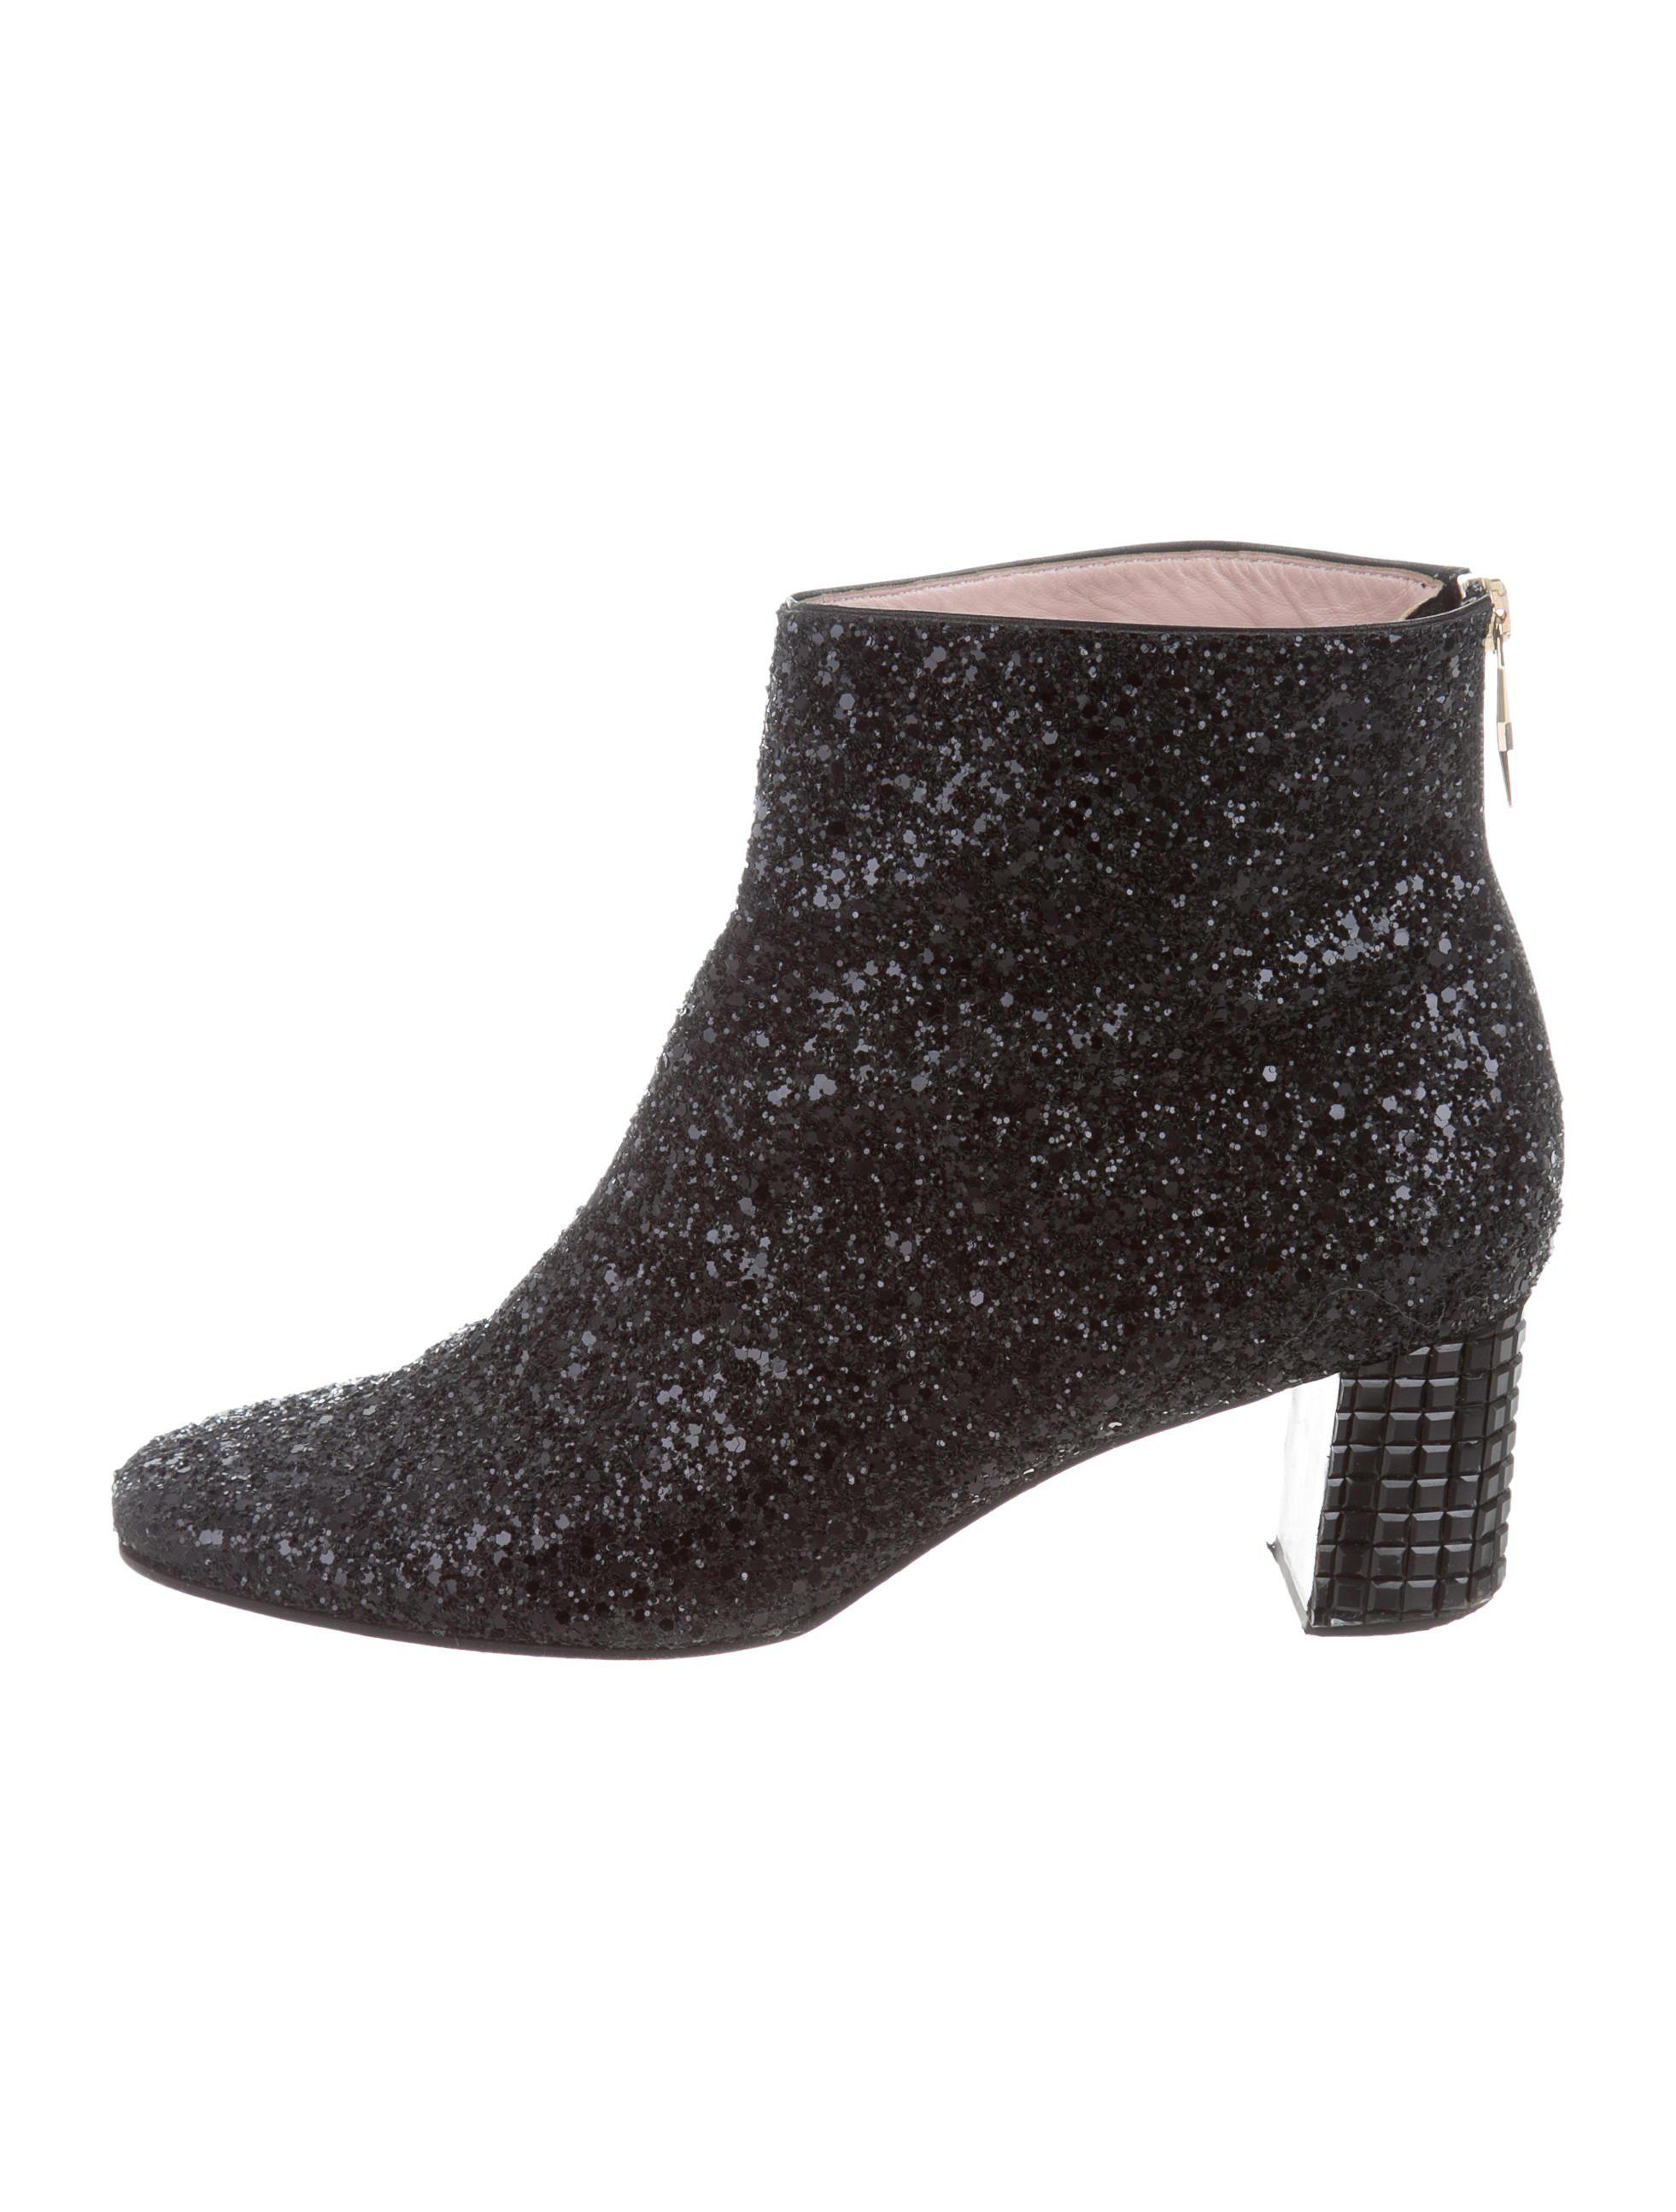 shop offer cheap online Kate Spade New York Sequined Square-Toe Booties 2014 for sale clearance from china aoqDQajdm